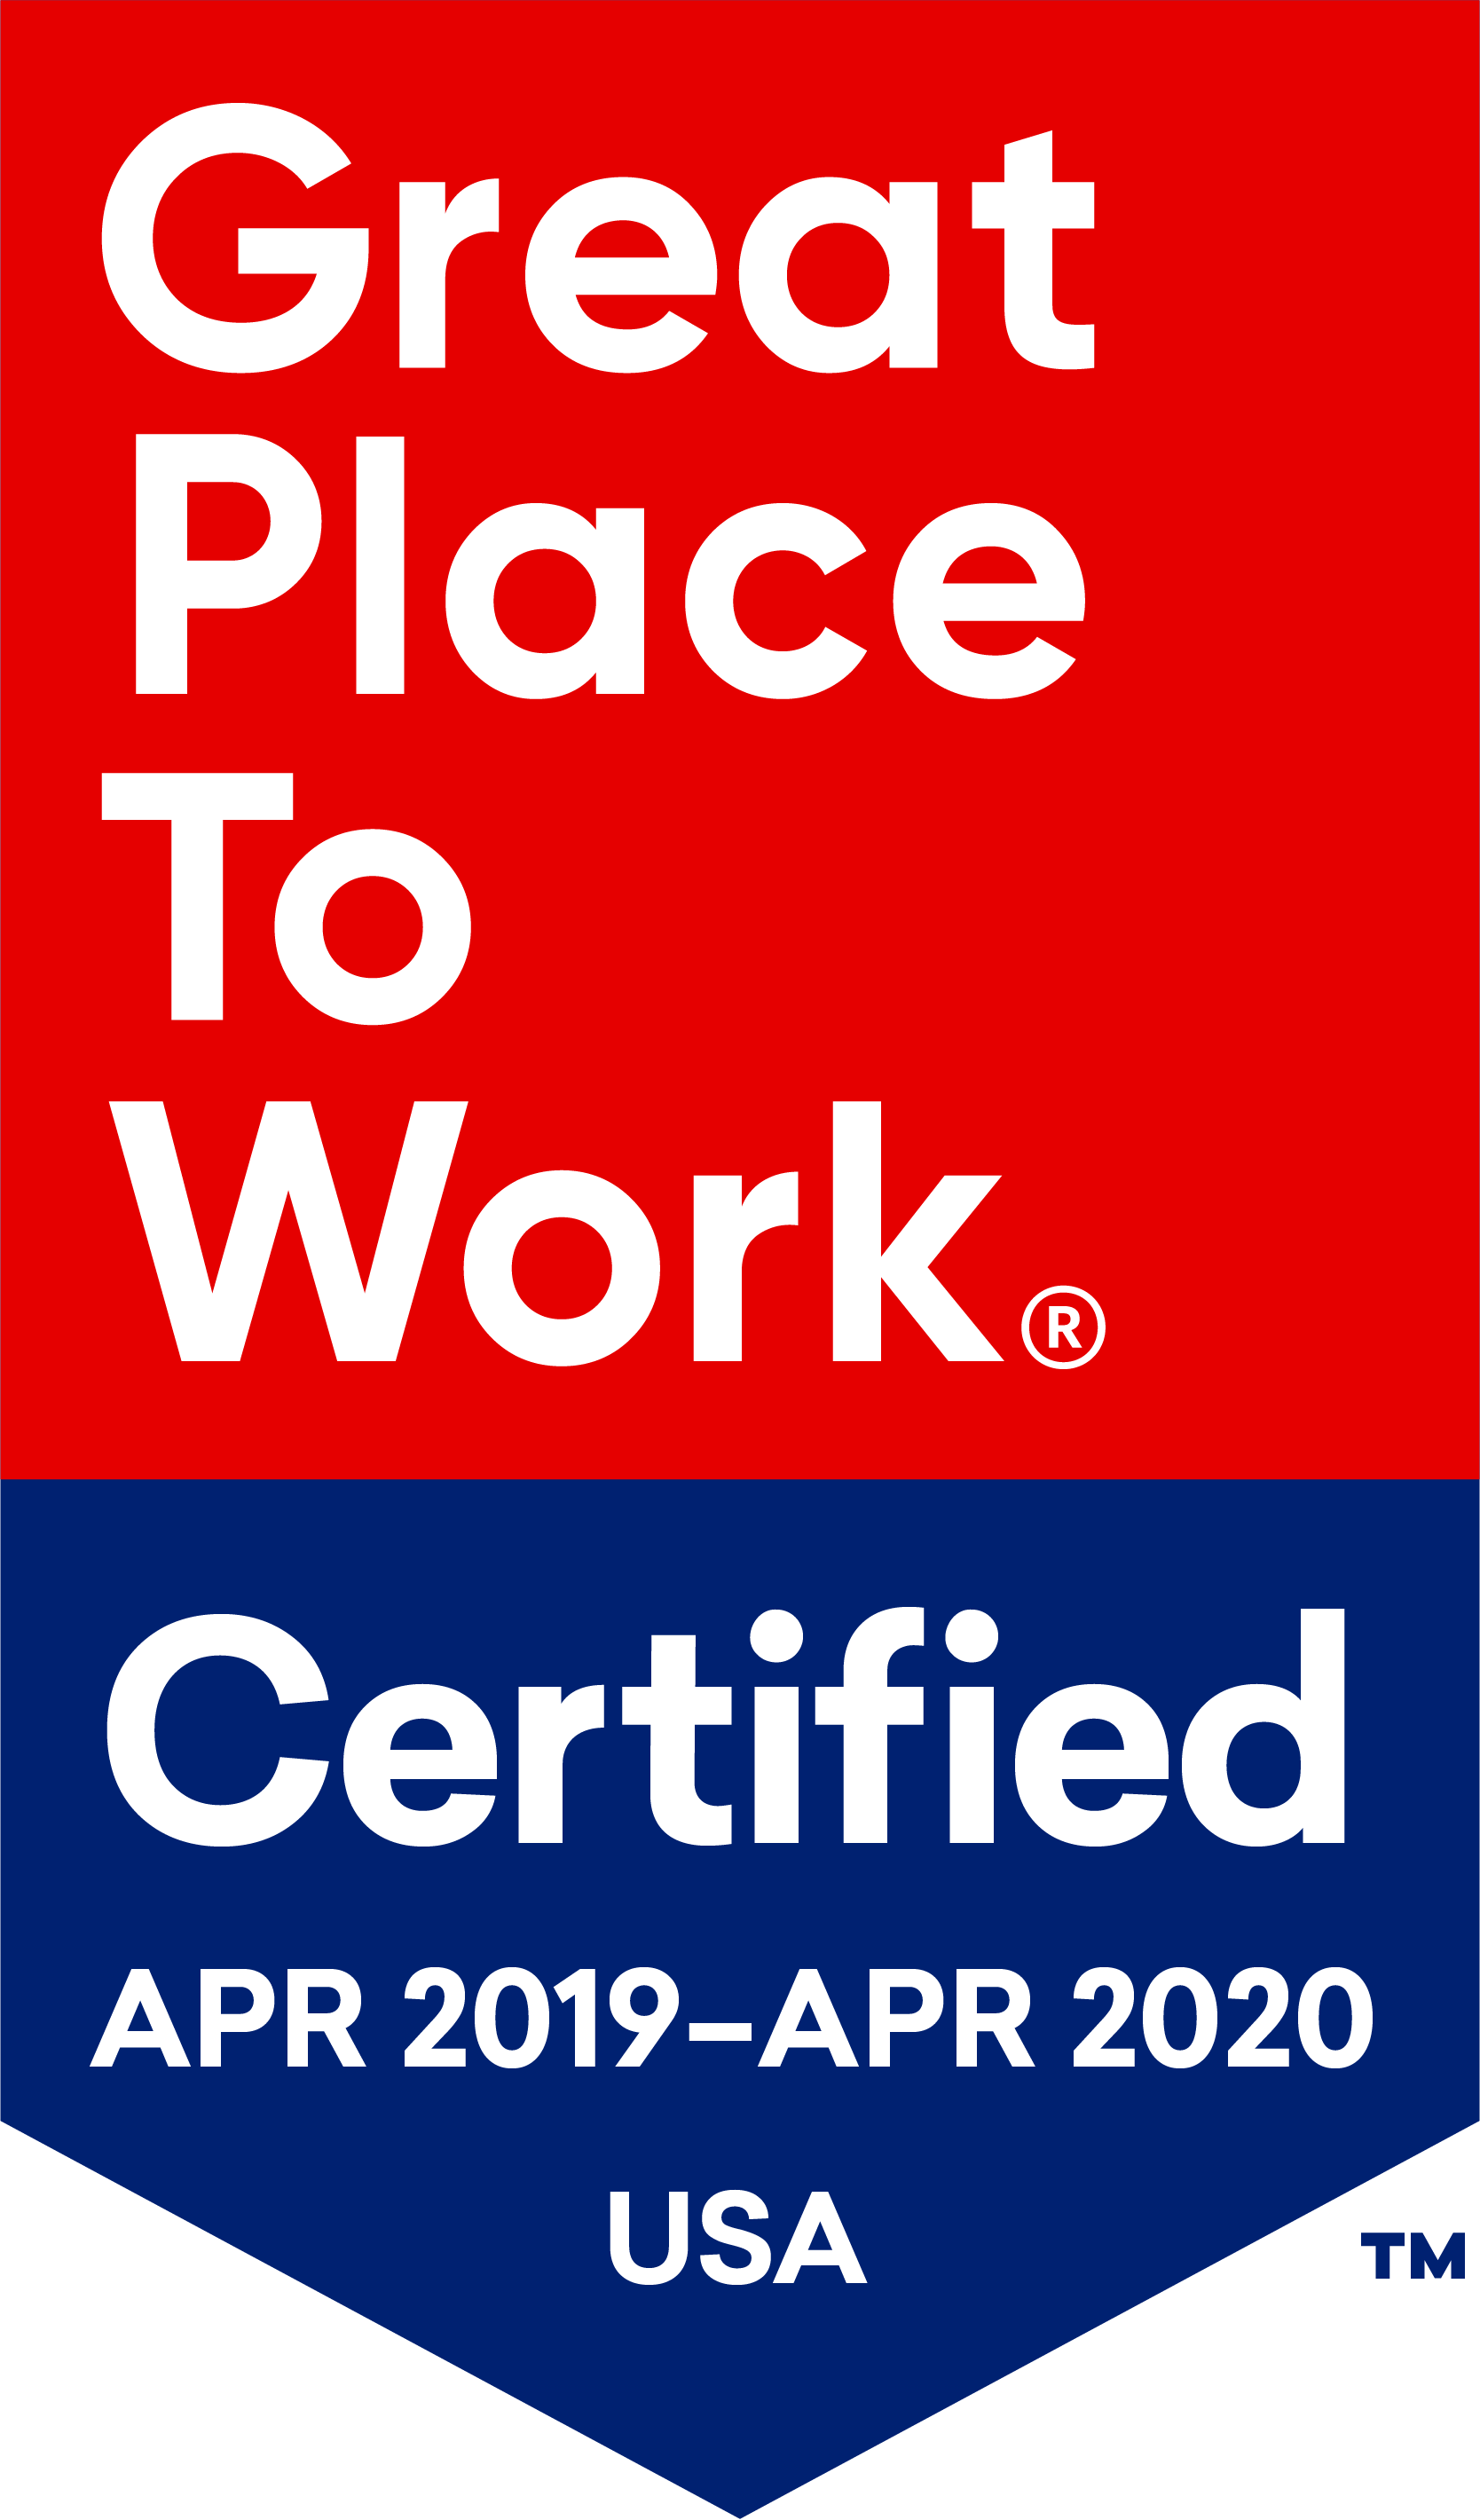 gptw_certified_badge_apr_2019_rgb_certified_daterange.png